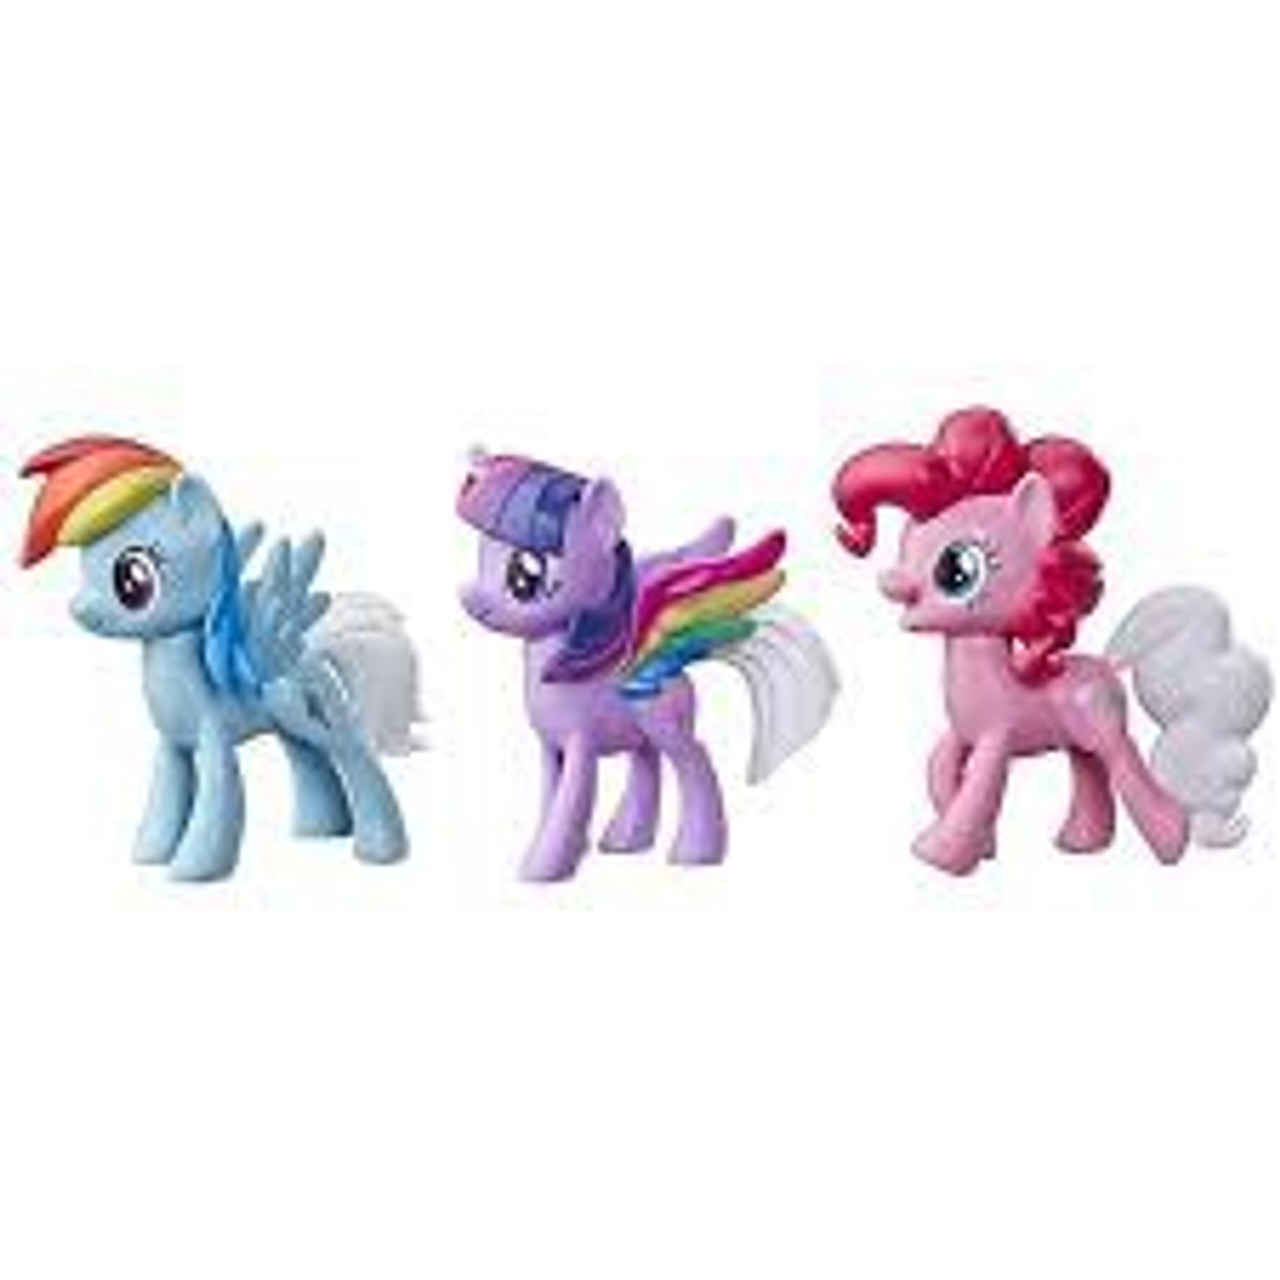 MY LITTLE PONY RAINBOW TAIL SURPRISE - 3 PACK